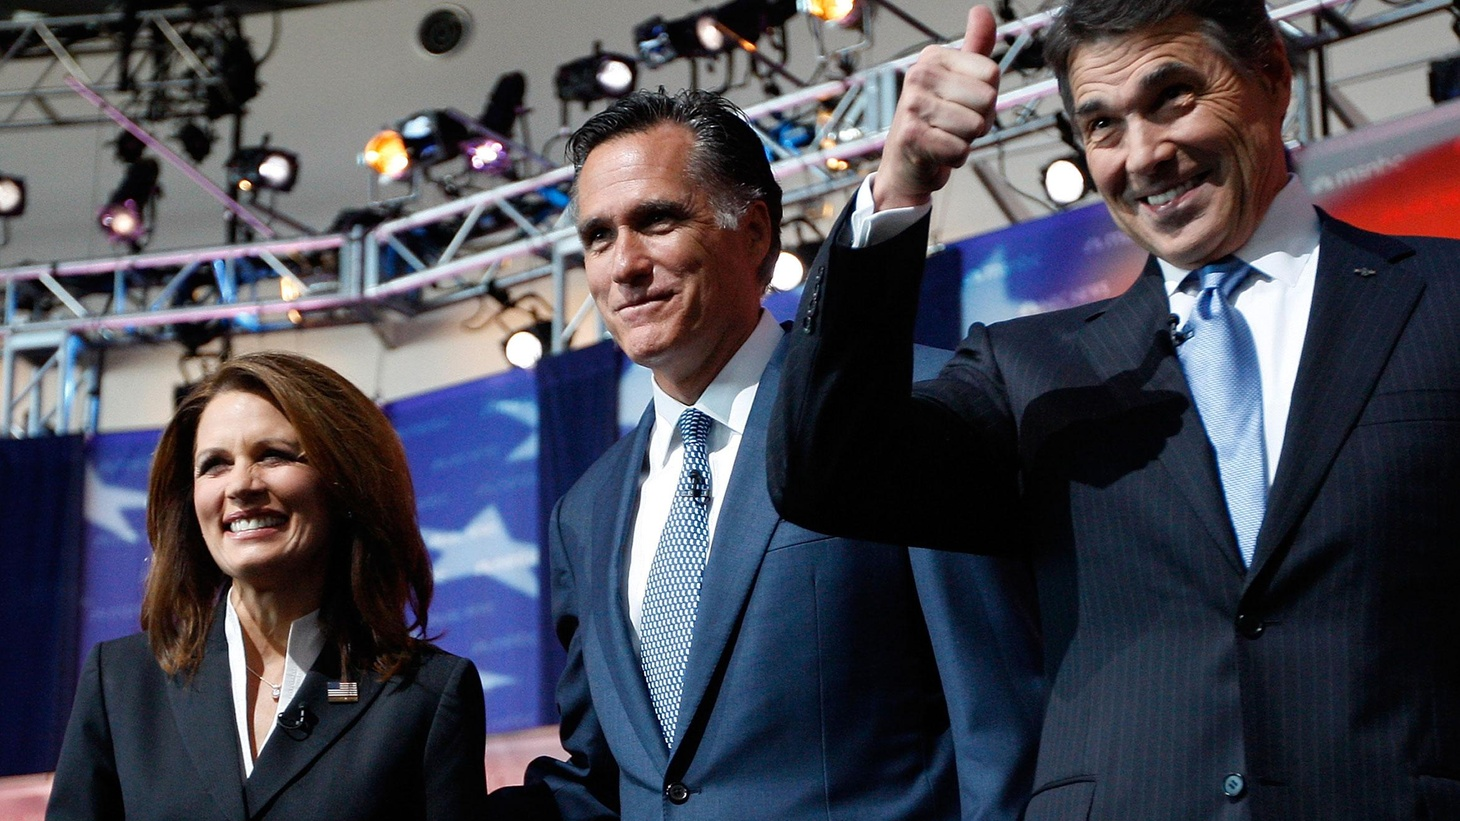 Rick Perry and Mitt Romney dominated last night's contentious debate in California. What issues did they focus on? What solutions did they and the other candidates offer?